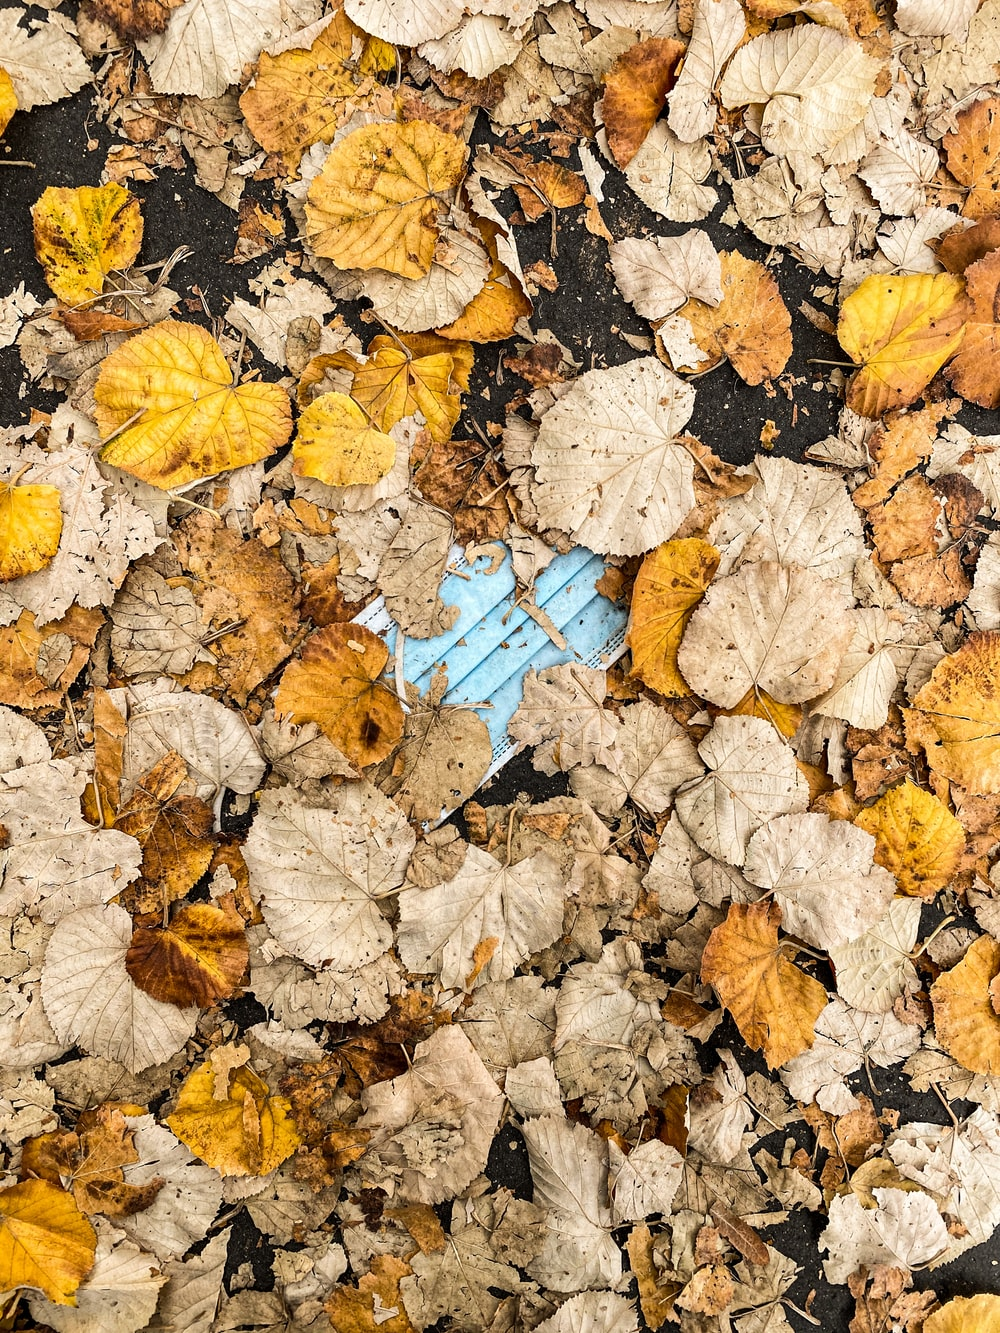 brown leaves on blue plastic crate